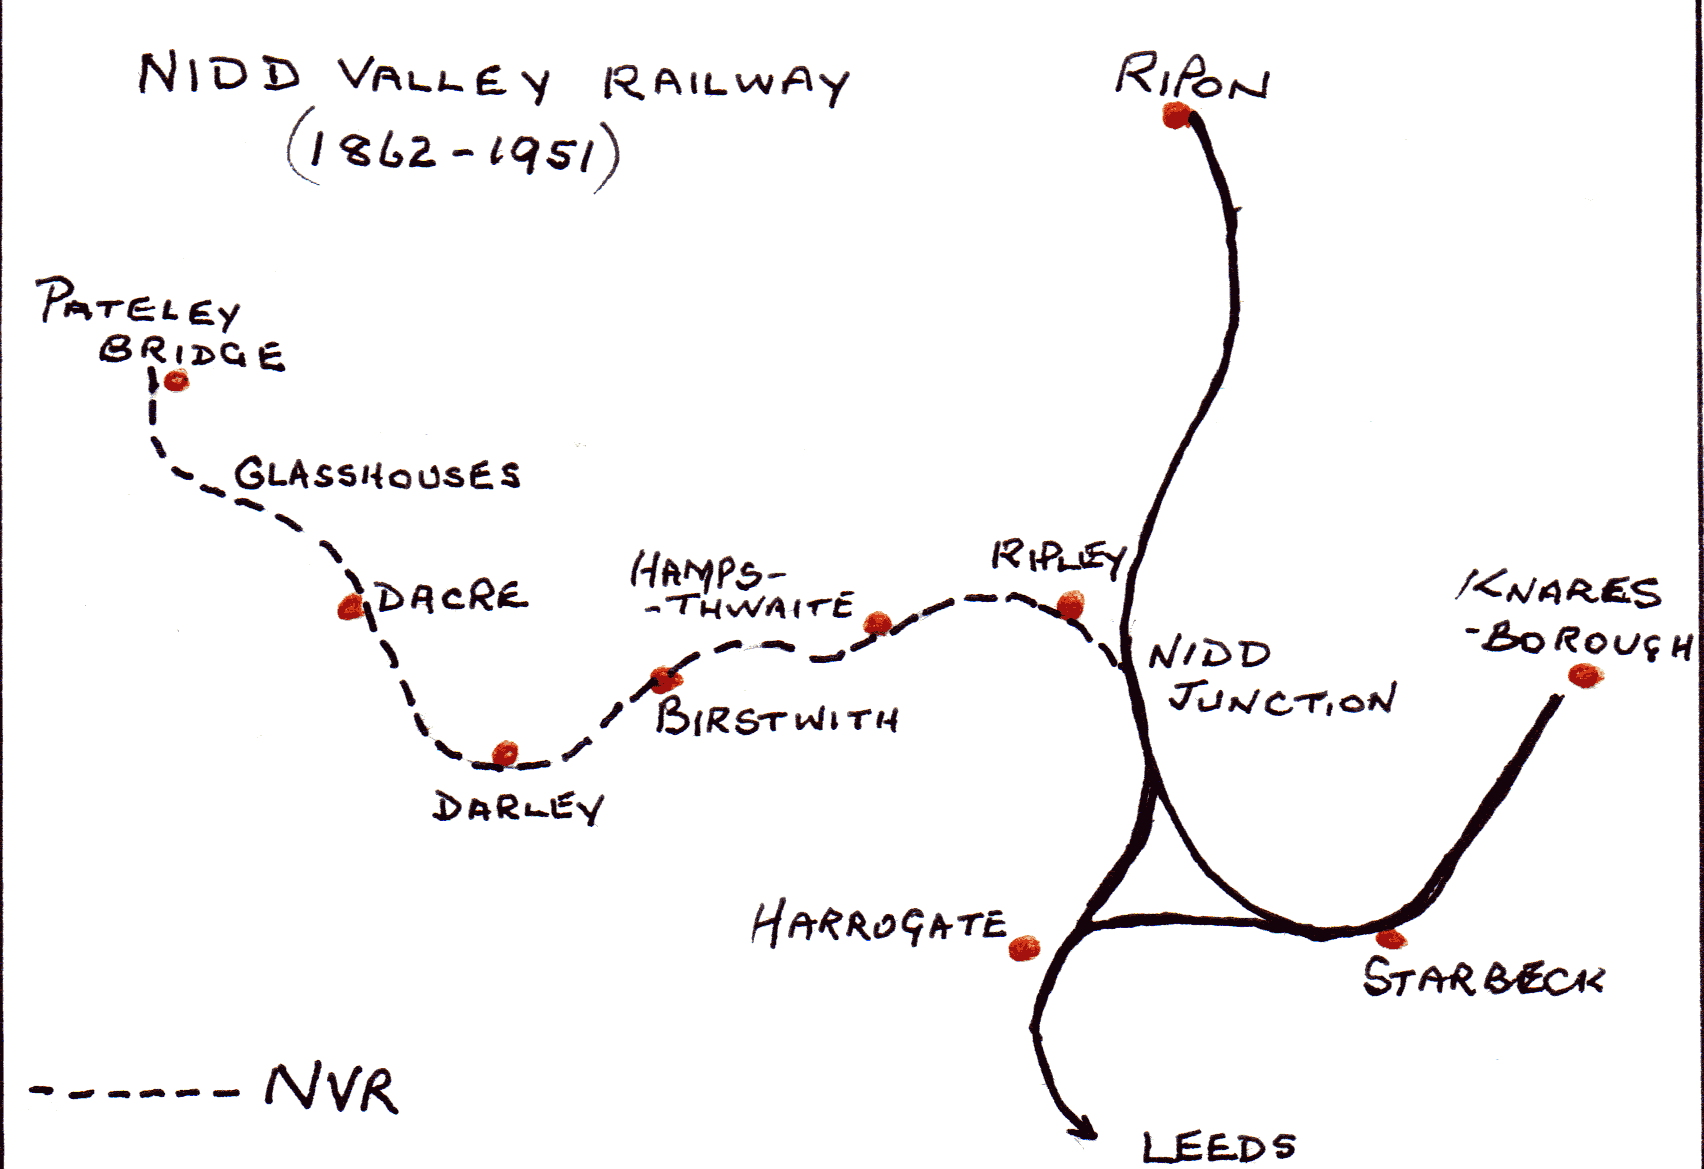 Map of Nidd Valley Railway